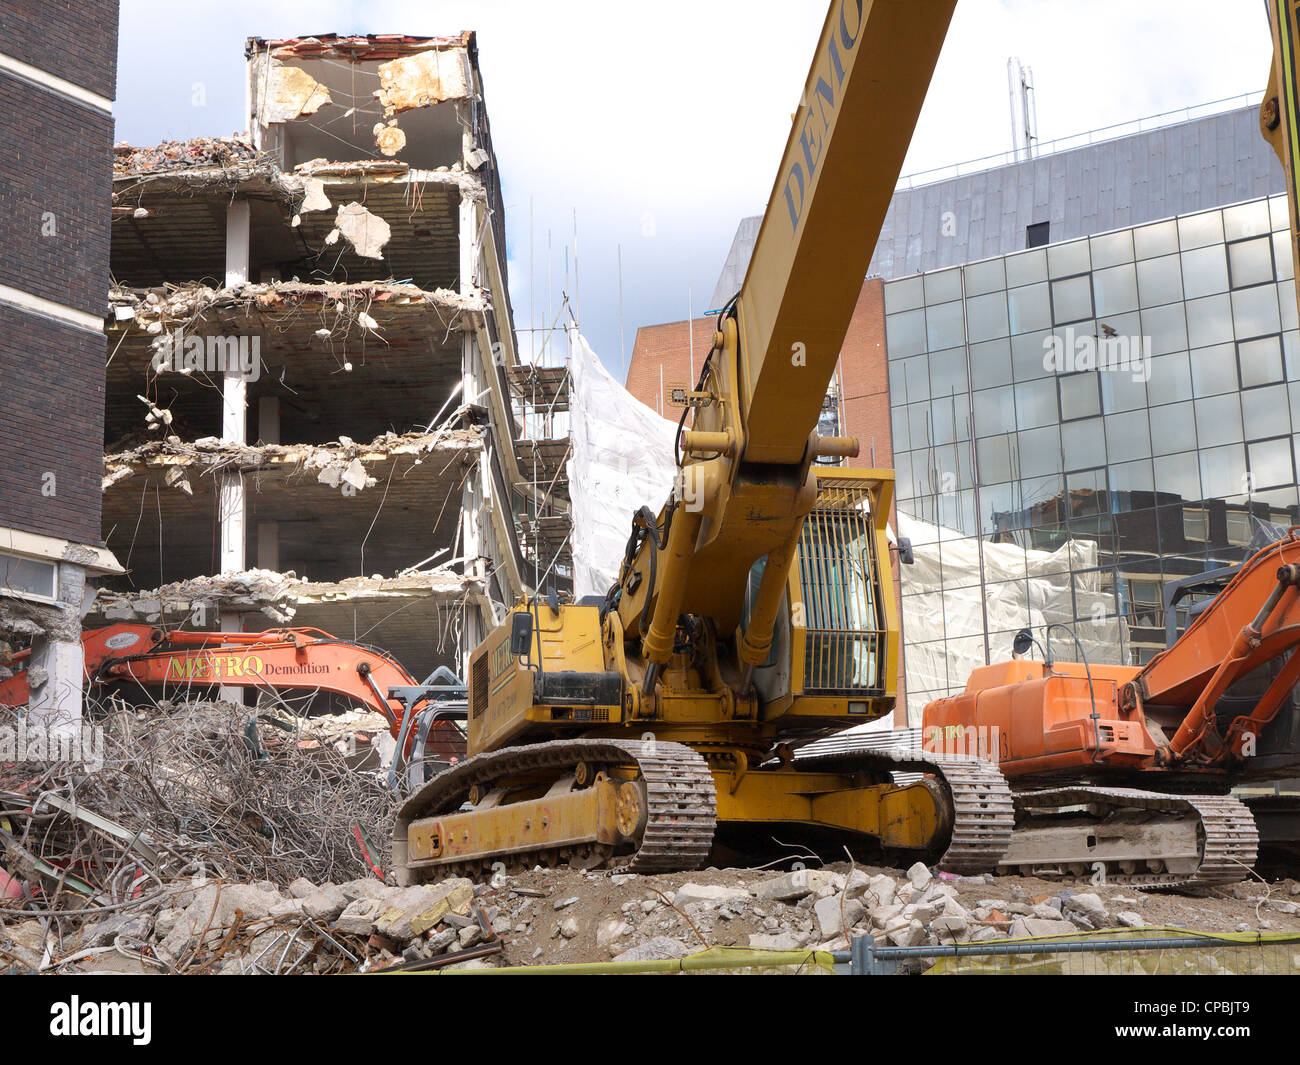 An old building being demolished by heavy machinery - Stock Image